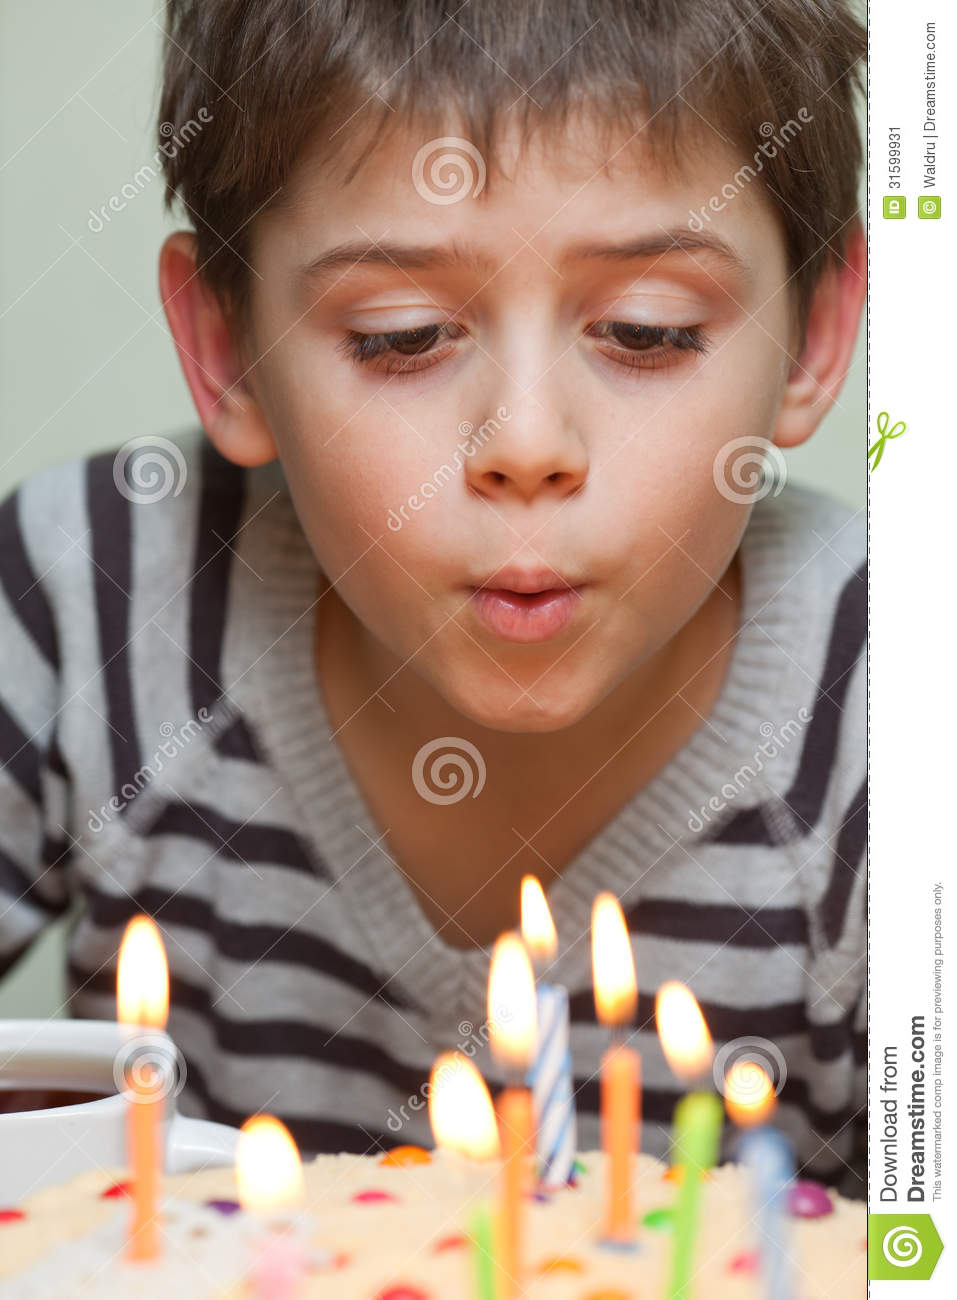 Cute Boy At Birthday Cake Stock Image Image 31599931